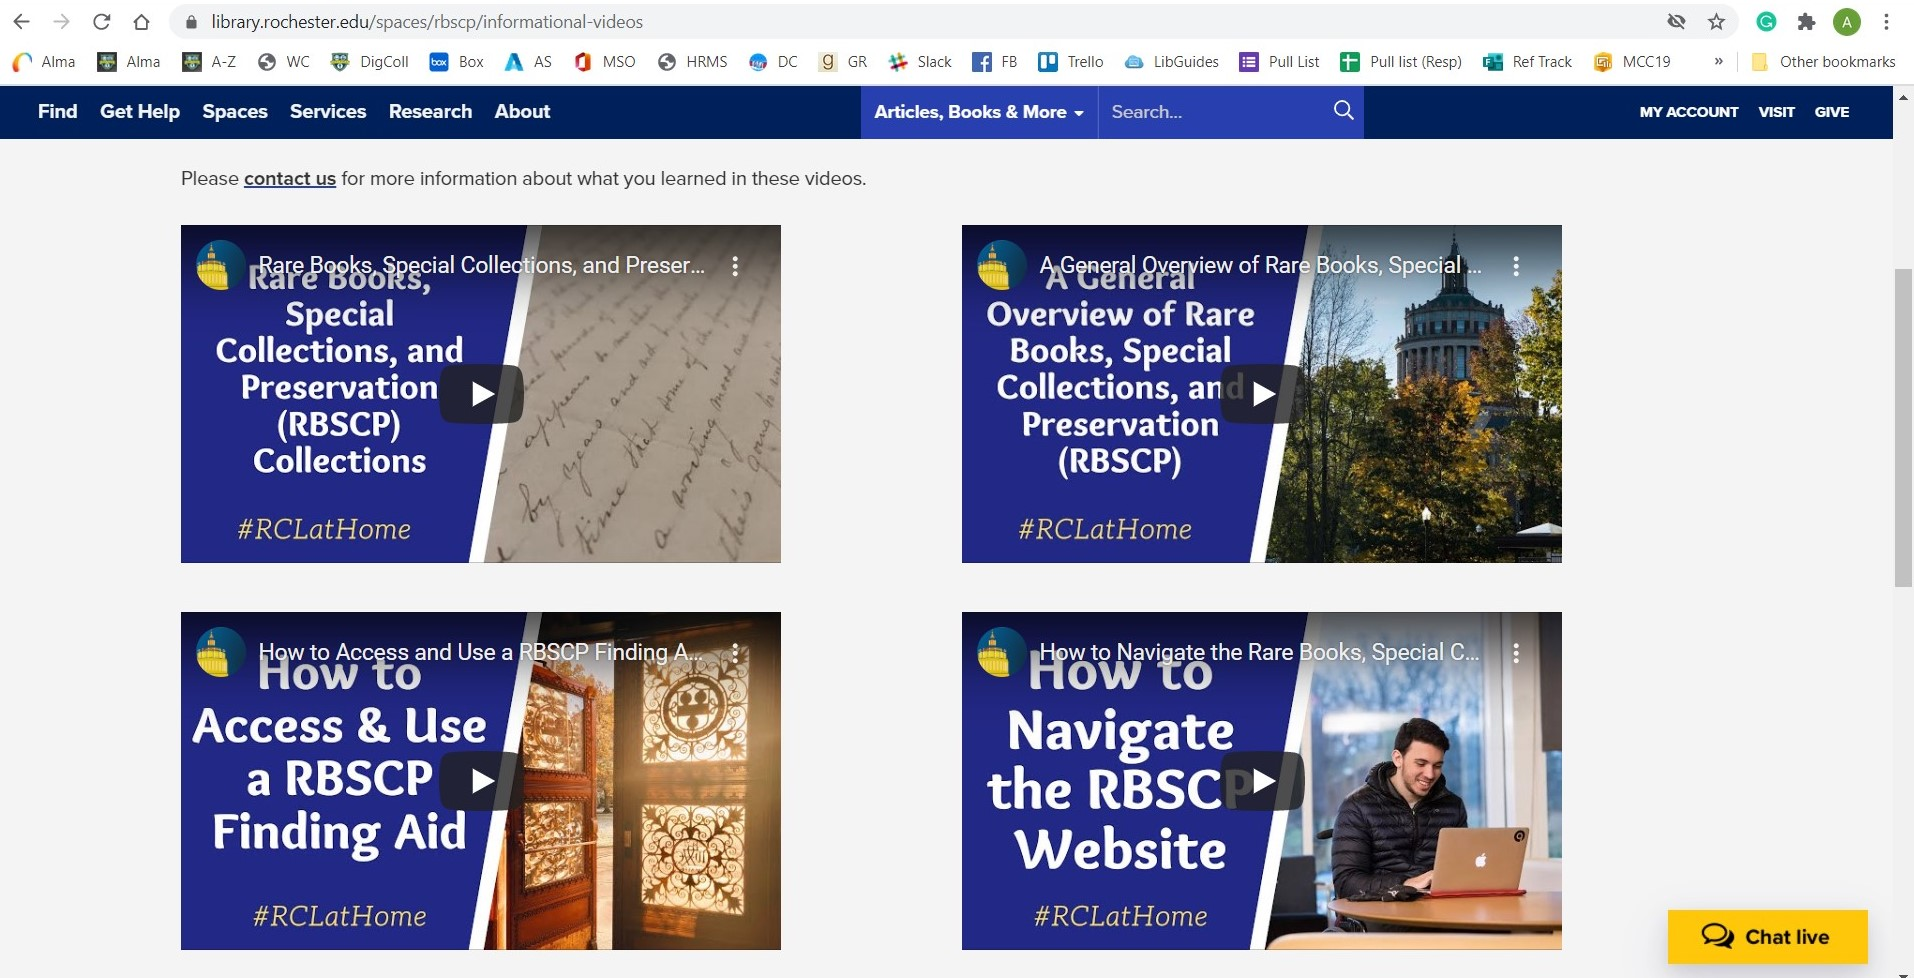 screenshot of Rare Books and Special Collections website, showing 4 instructional videos